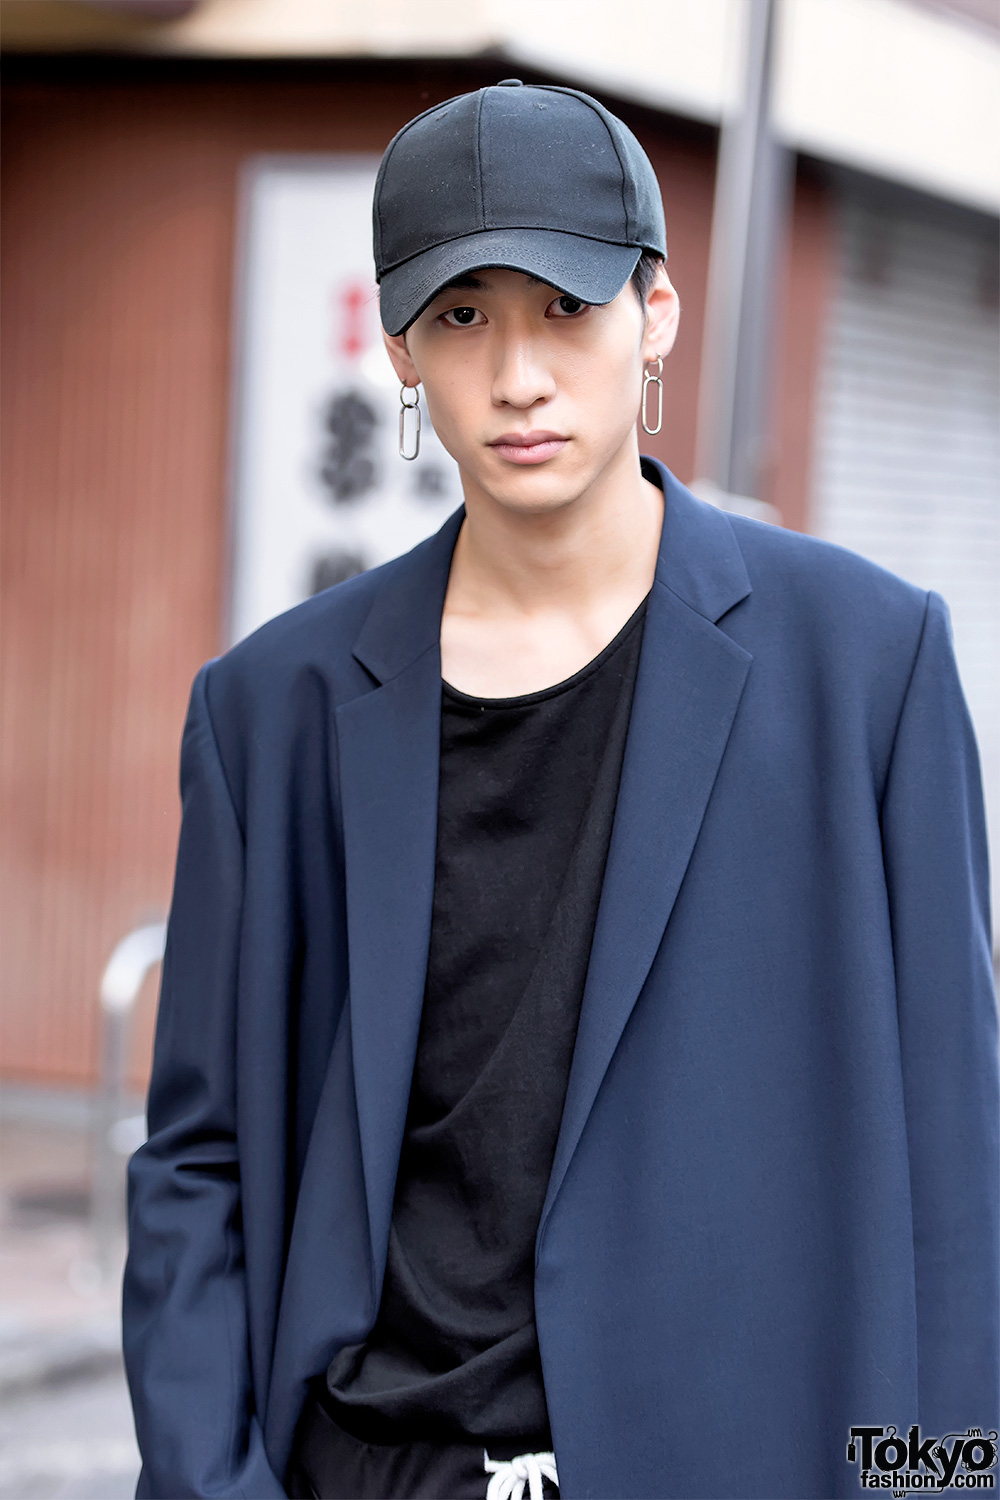 Japanese lad wearing denim